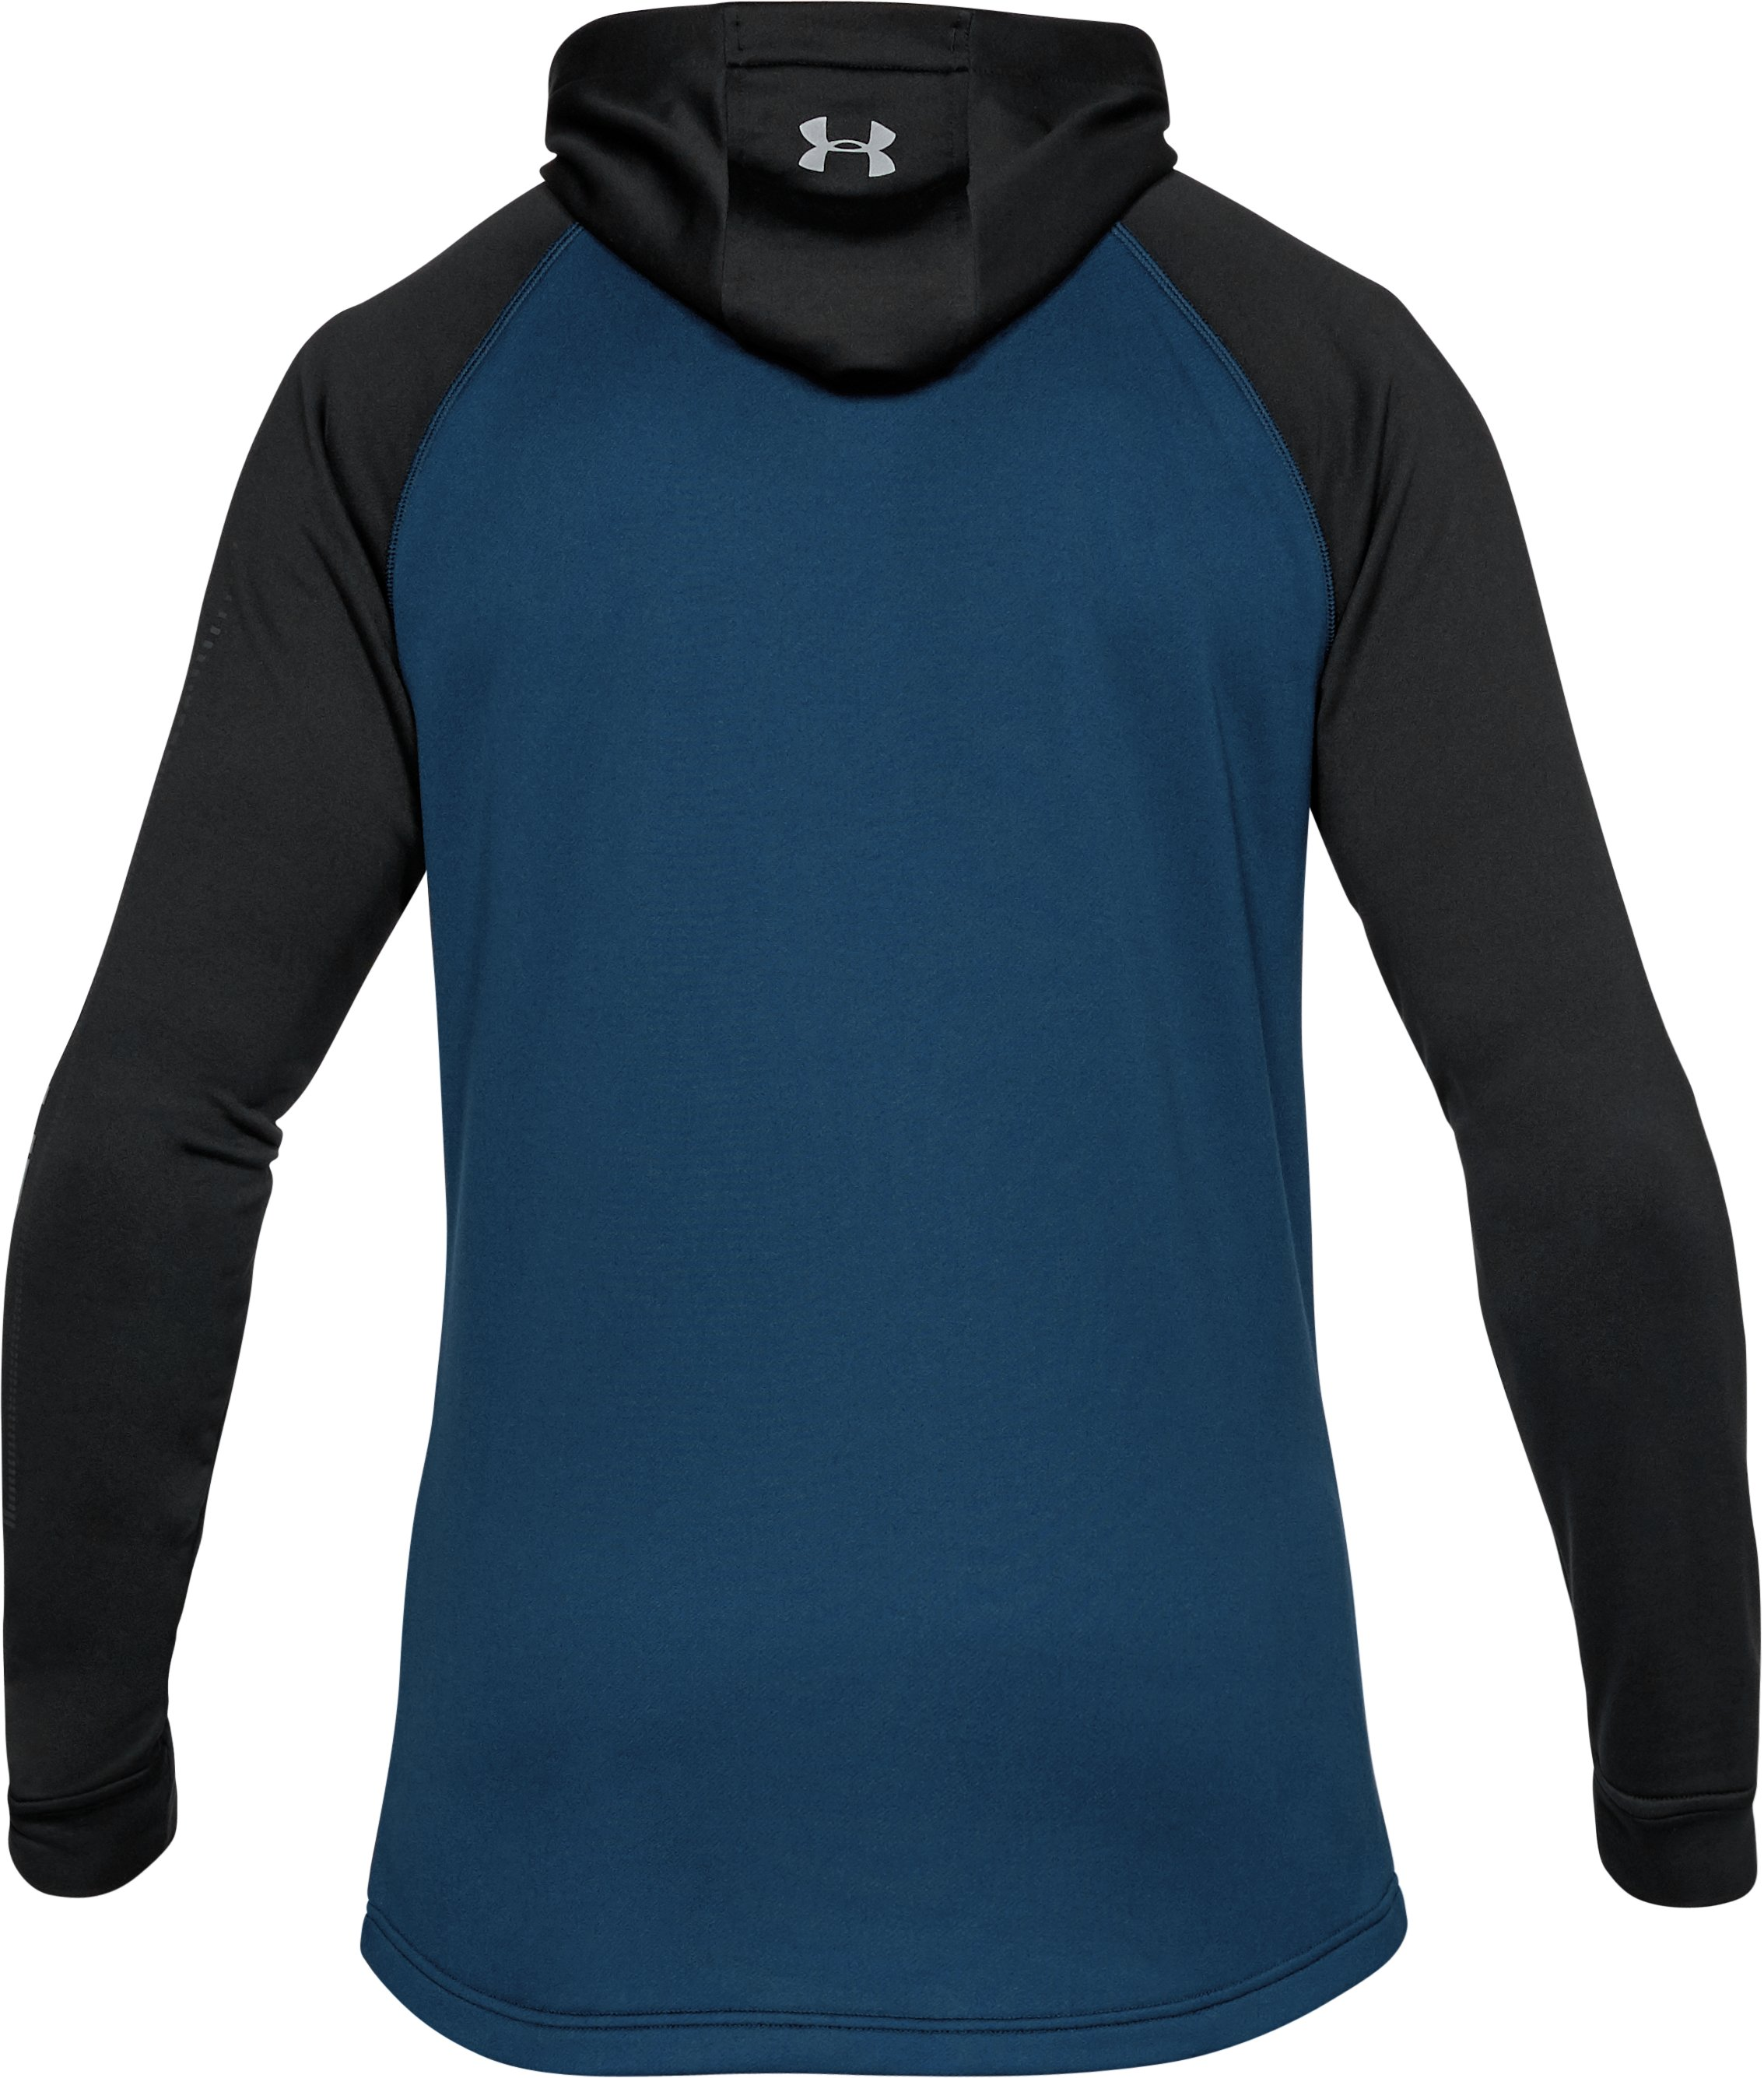 Men's UA Tech Terry Hoodie, BLACKOUT NAVY, undefined